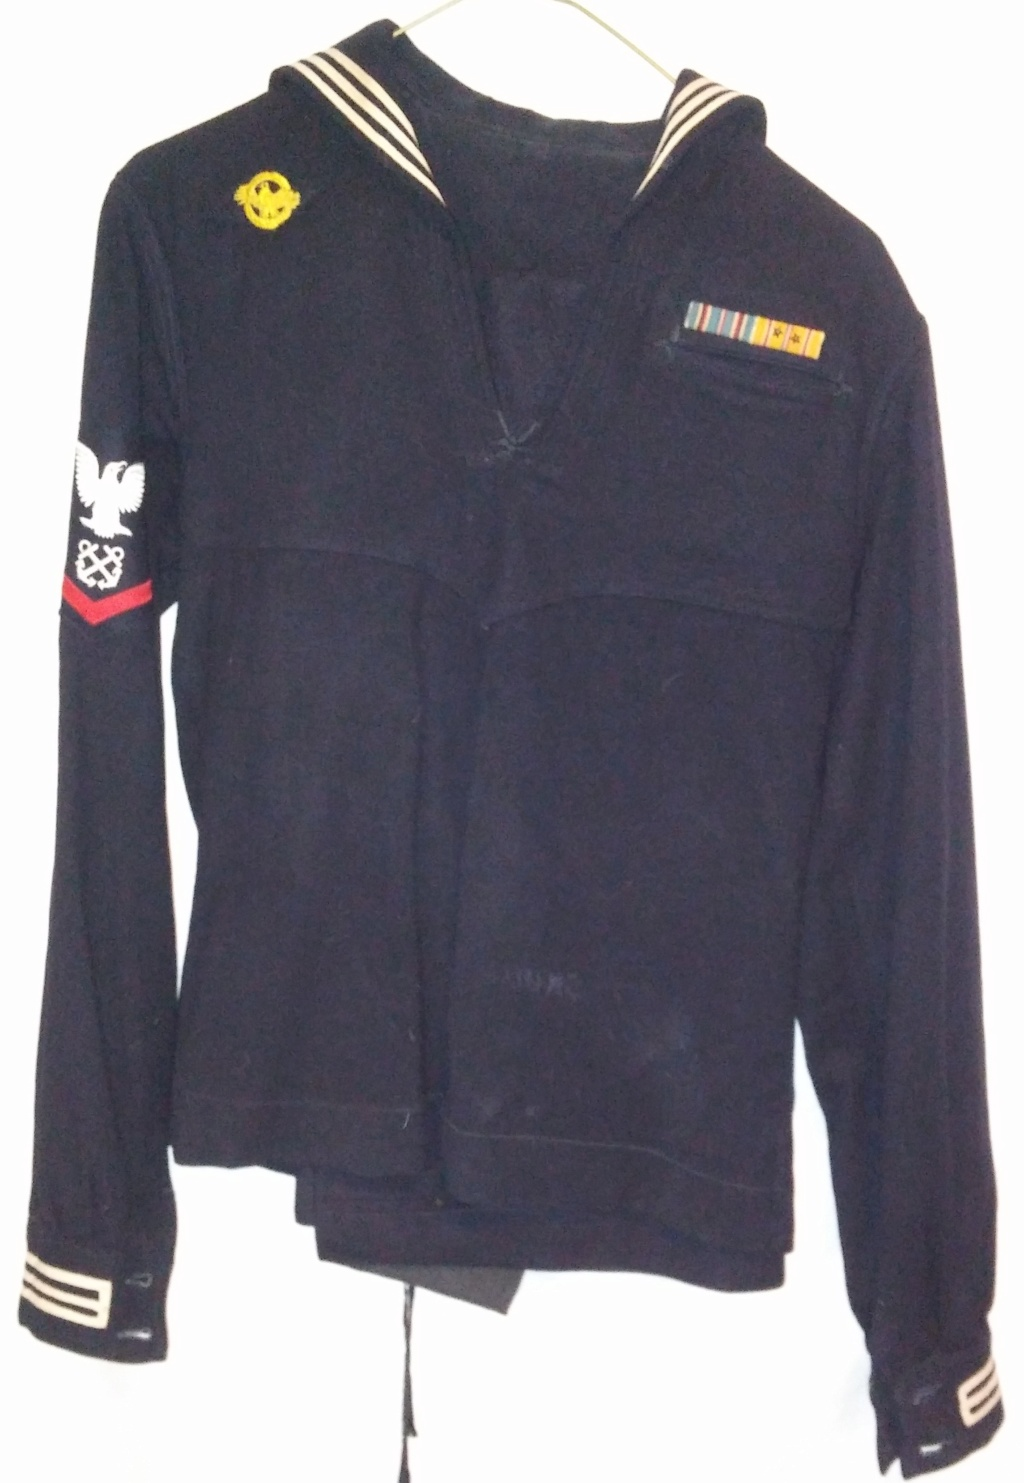 My Navy Jumper Collection 19700443